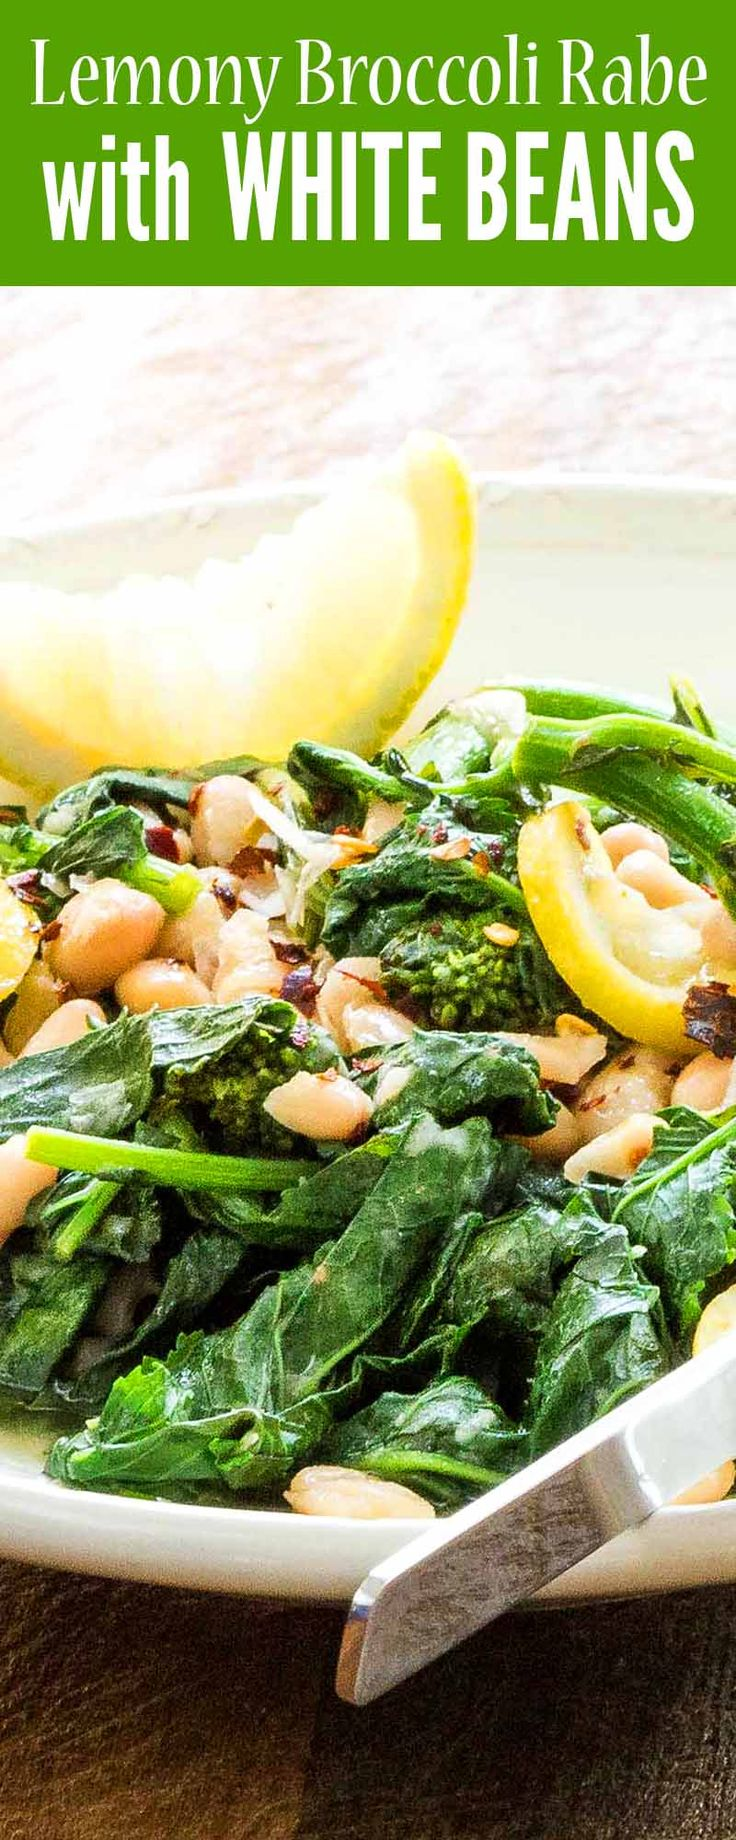 Bright, bitter and creamy, Lemony Broccoli Rabe with White Beans works equally well as a side dish alongside a roasted chicken or as a standalone vegetarian main. #whitebeans #italian #vegetarian #broccolirabe #sidedish